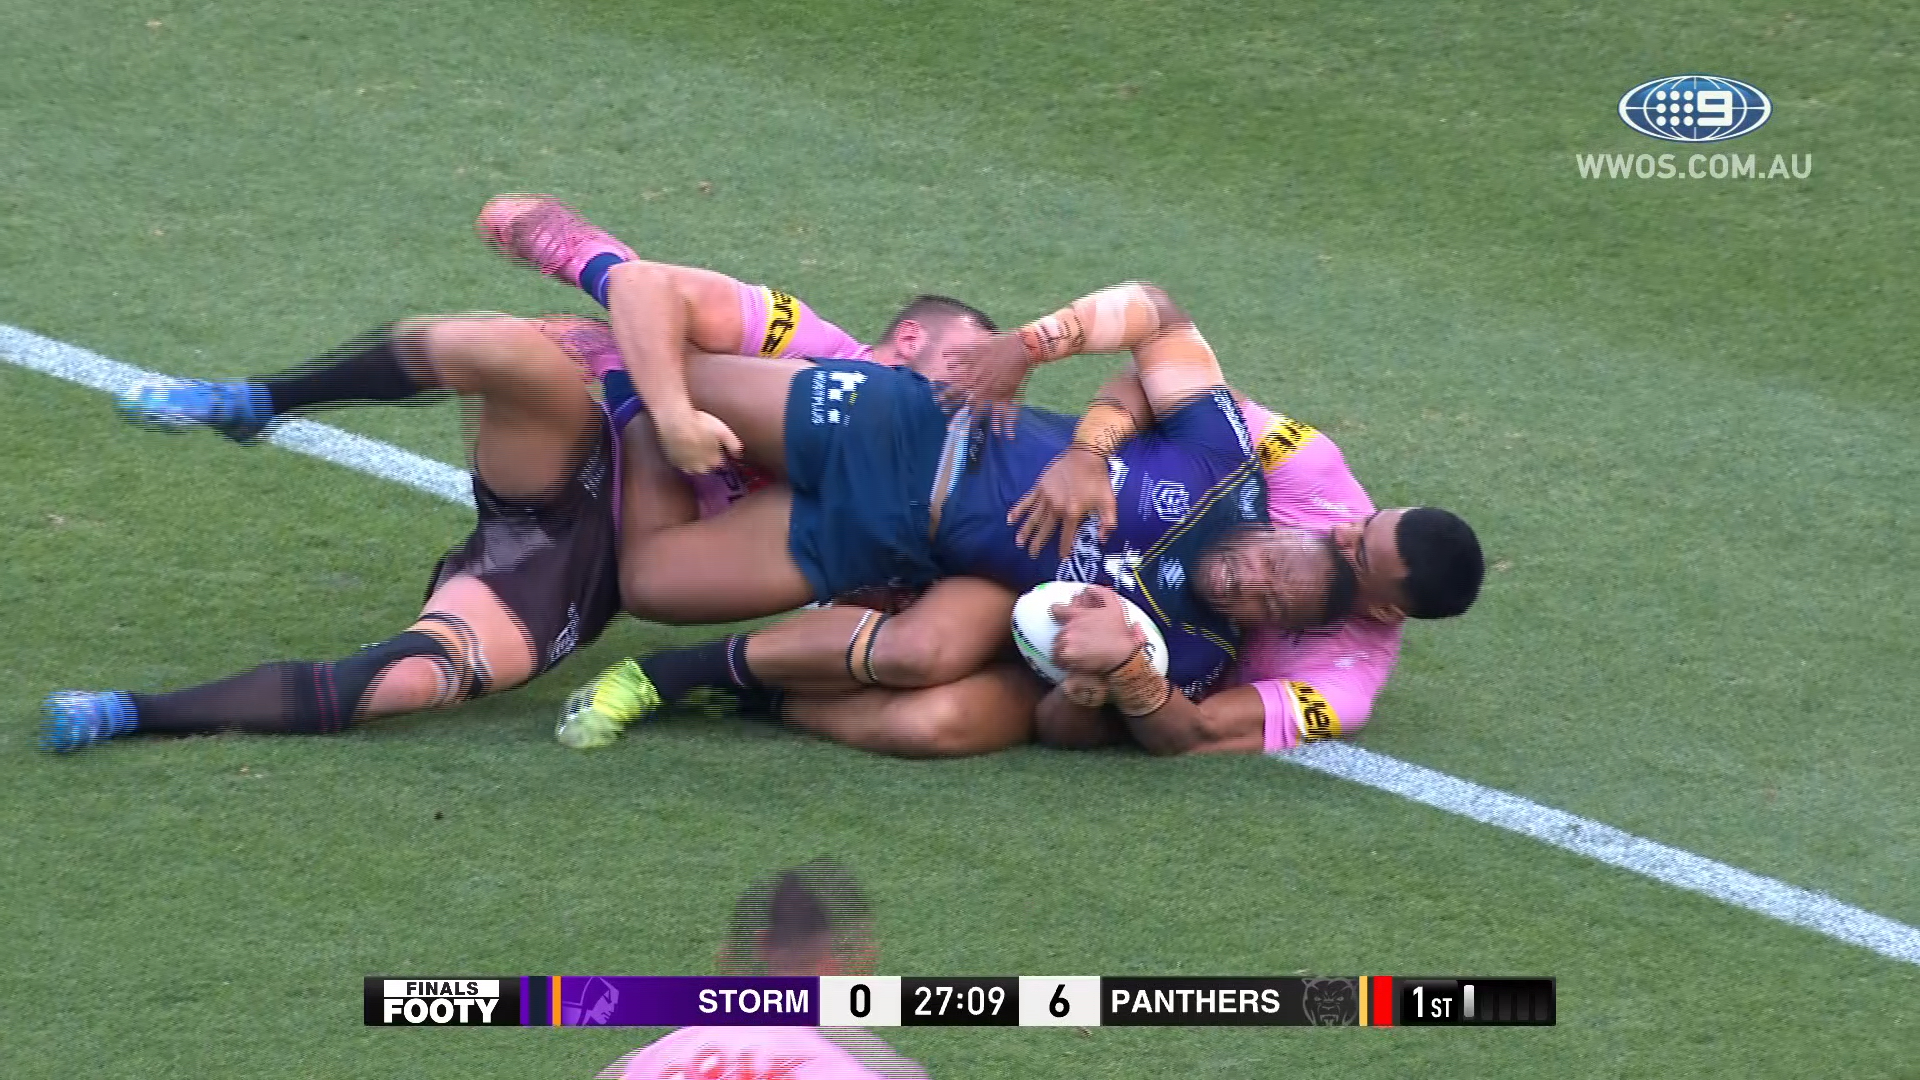 NRL Highlights: The Panther edge past the Storm in a Finals thriller - Preliminary Finals